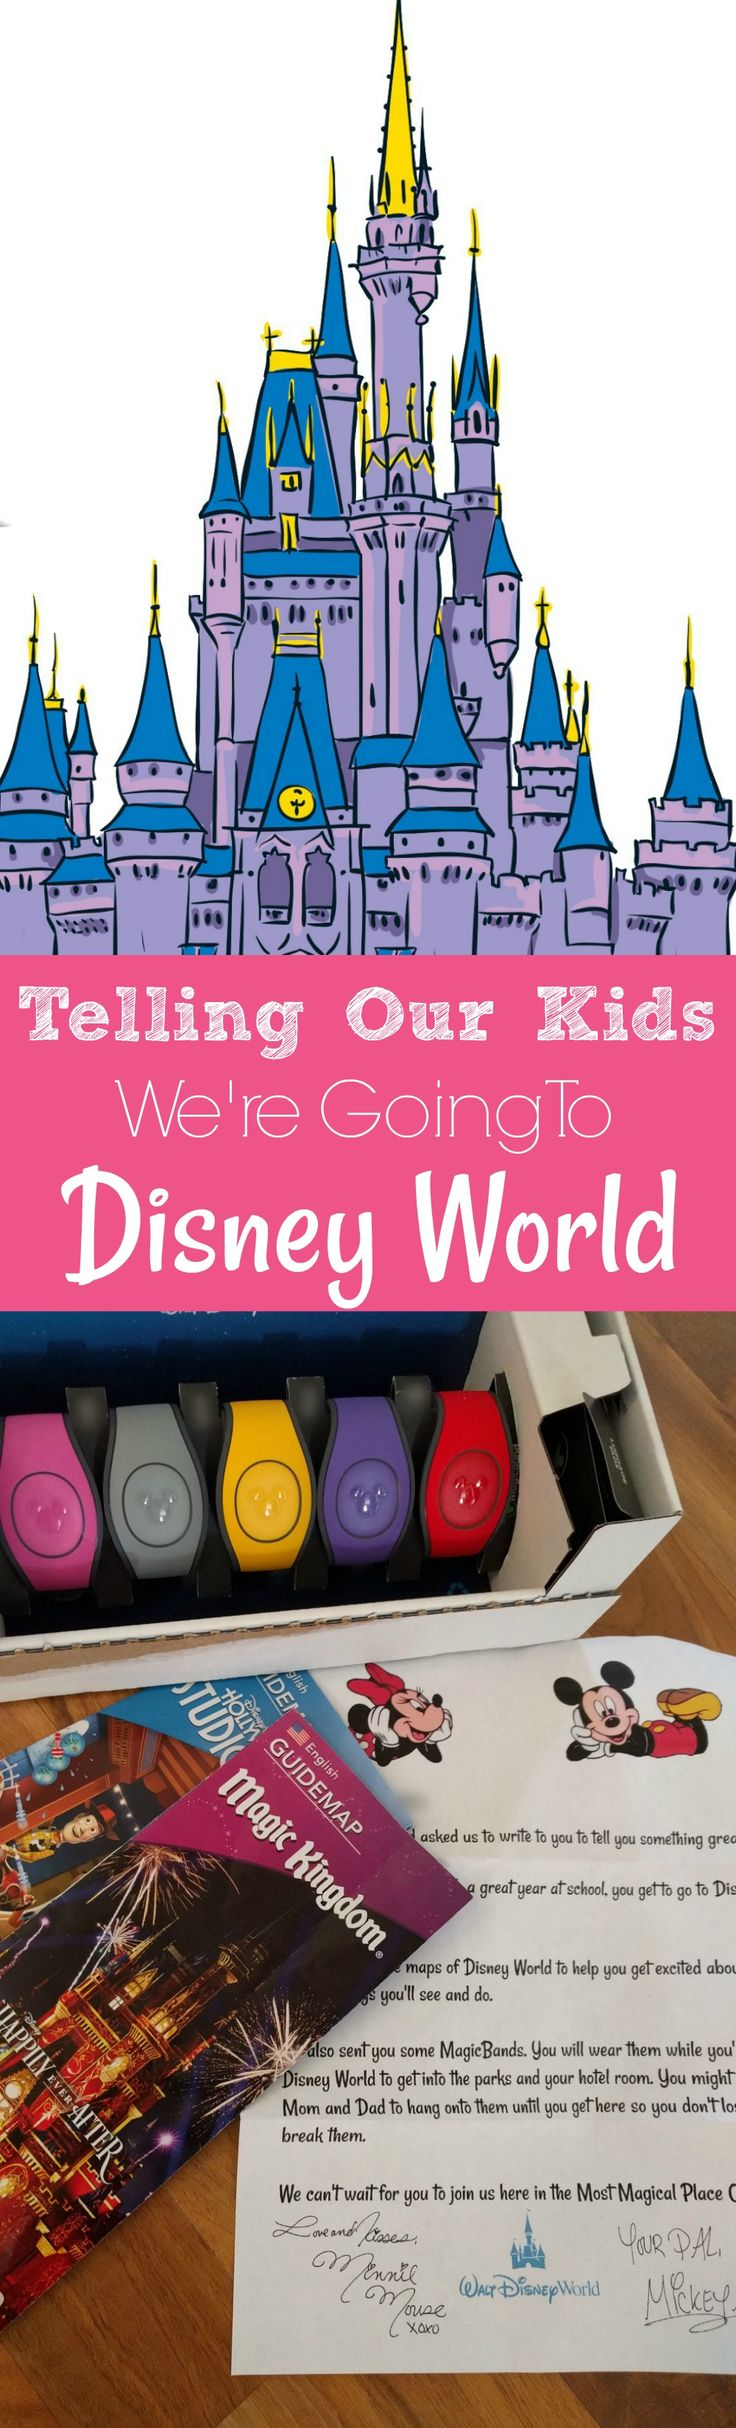 Going to Disney World is super exciting. TELLING YOUR KIDS you're going to Disney World might be even more Exciting. Here's one low-key way to surprise your kids with a trip to Disney!